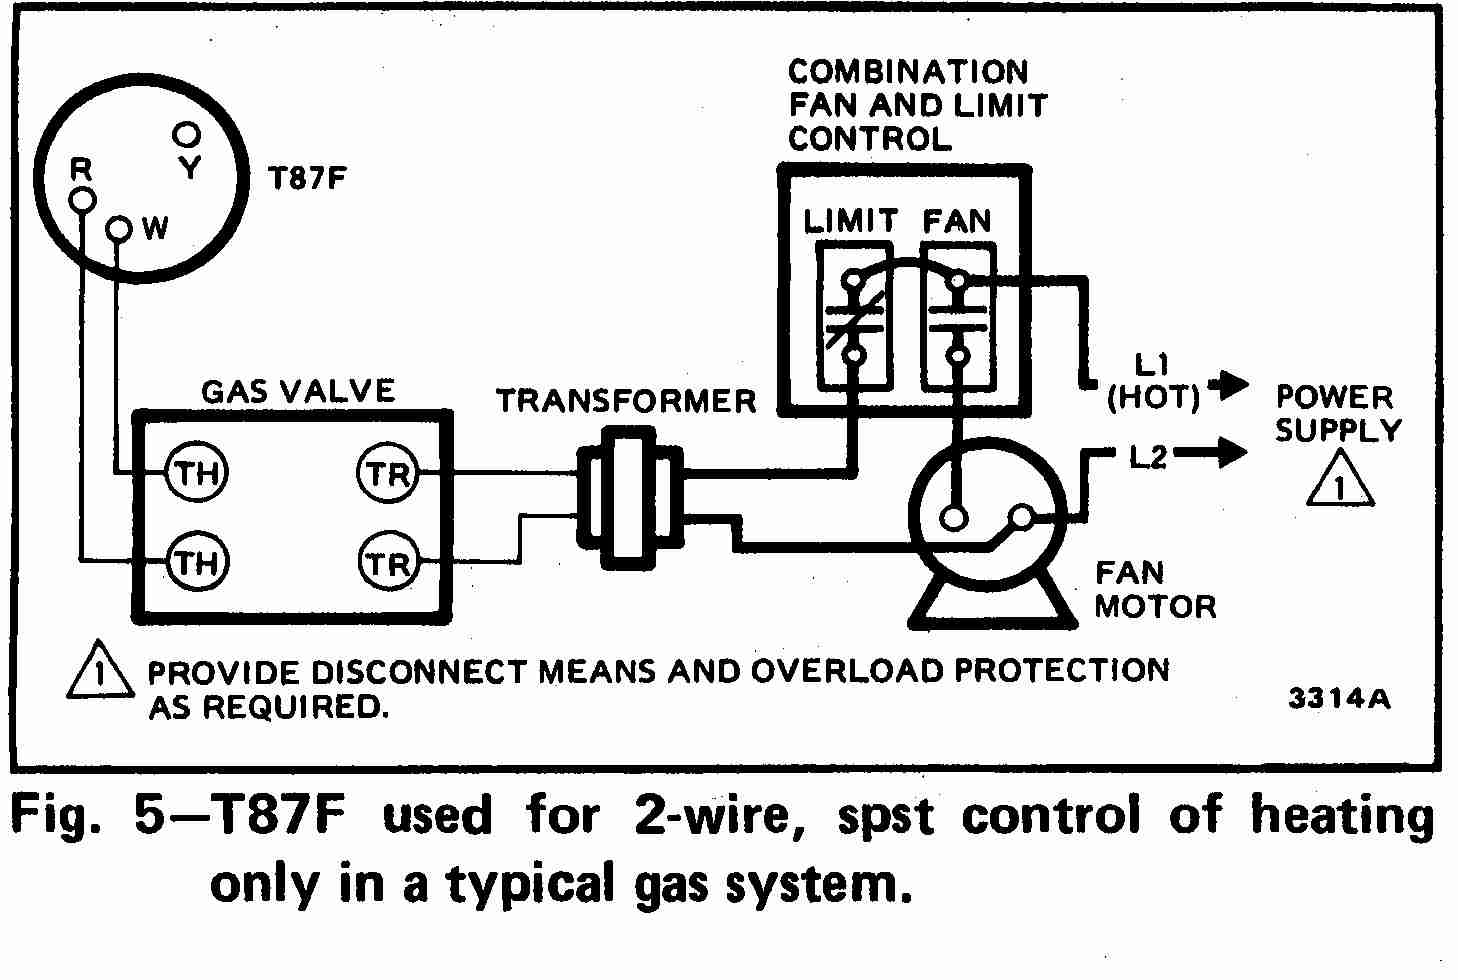 TT_T87F_0002_2Wg_DJF room thermostat wiring diagrams for hvac systems Coleman Mach RV Comfort Thermostat at creativeand.co